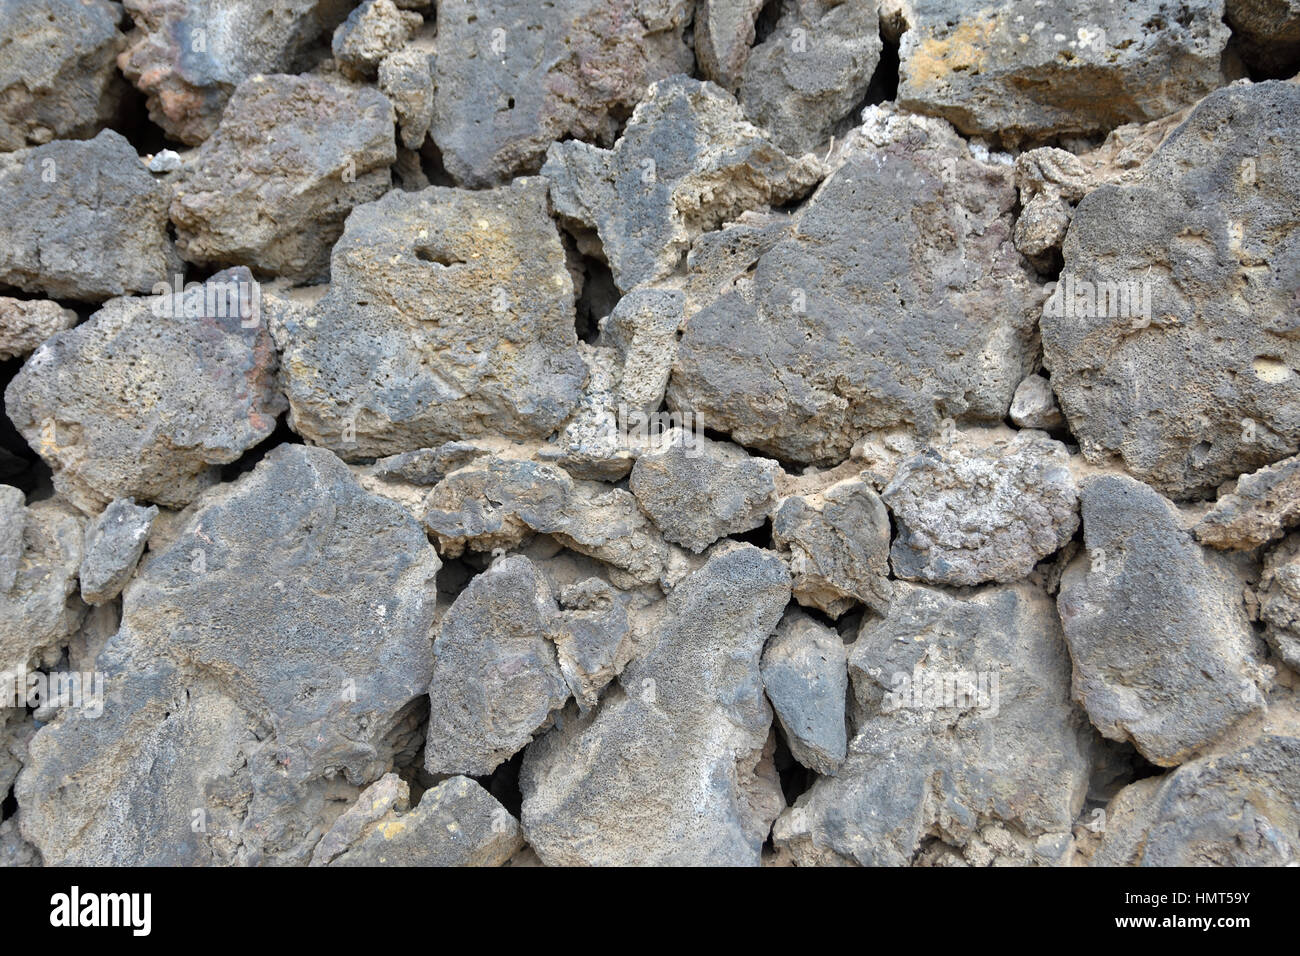 Close up of a wall made of lava stone, picture from Puerto de la cruz Tenerife. - Stock Image